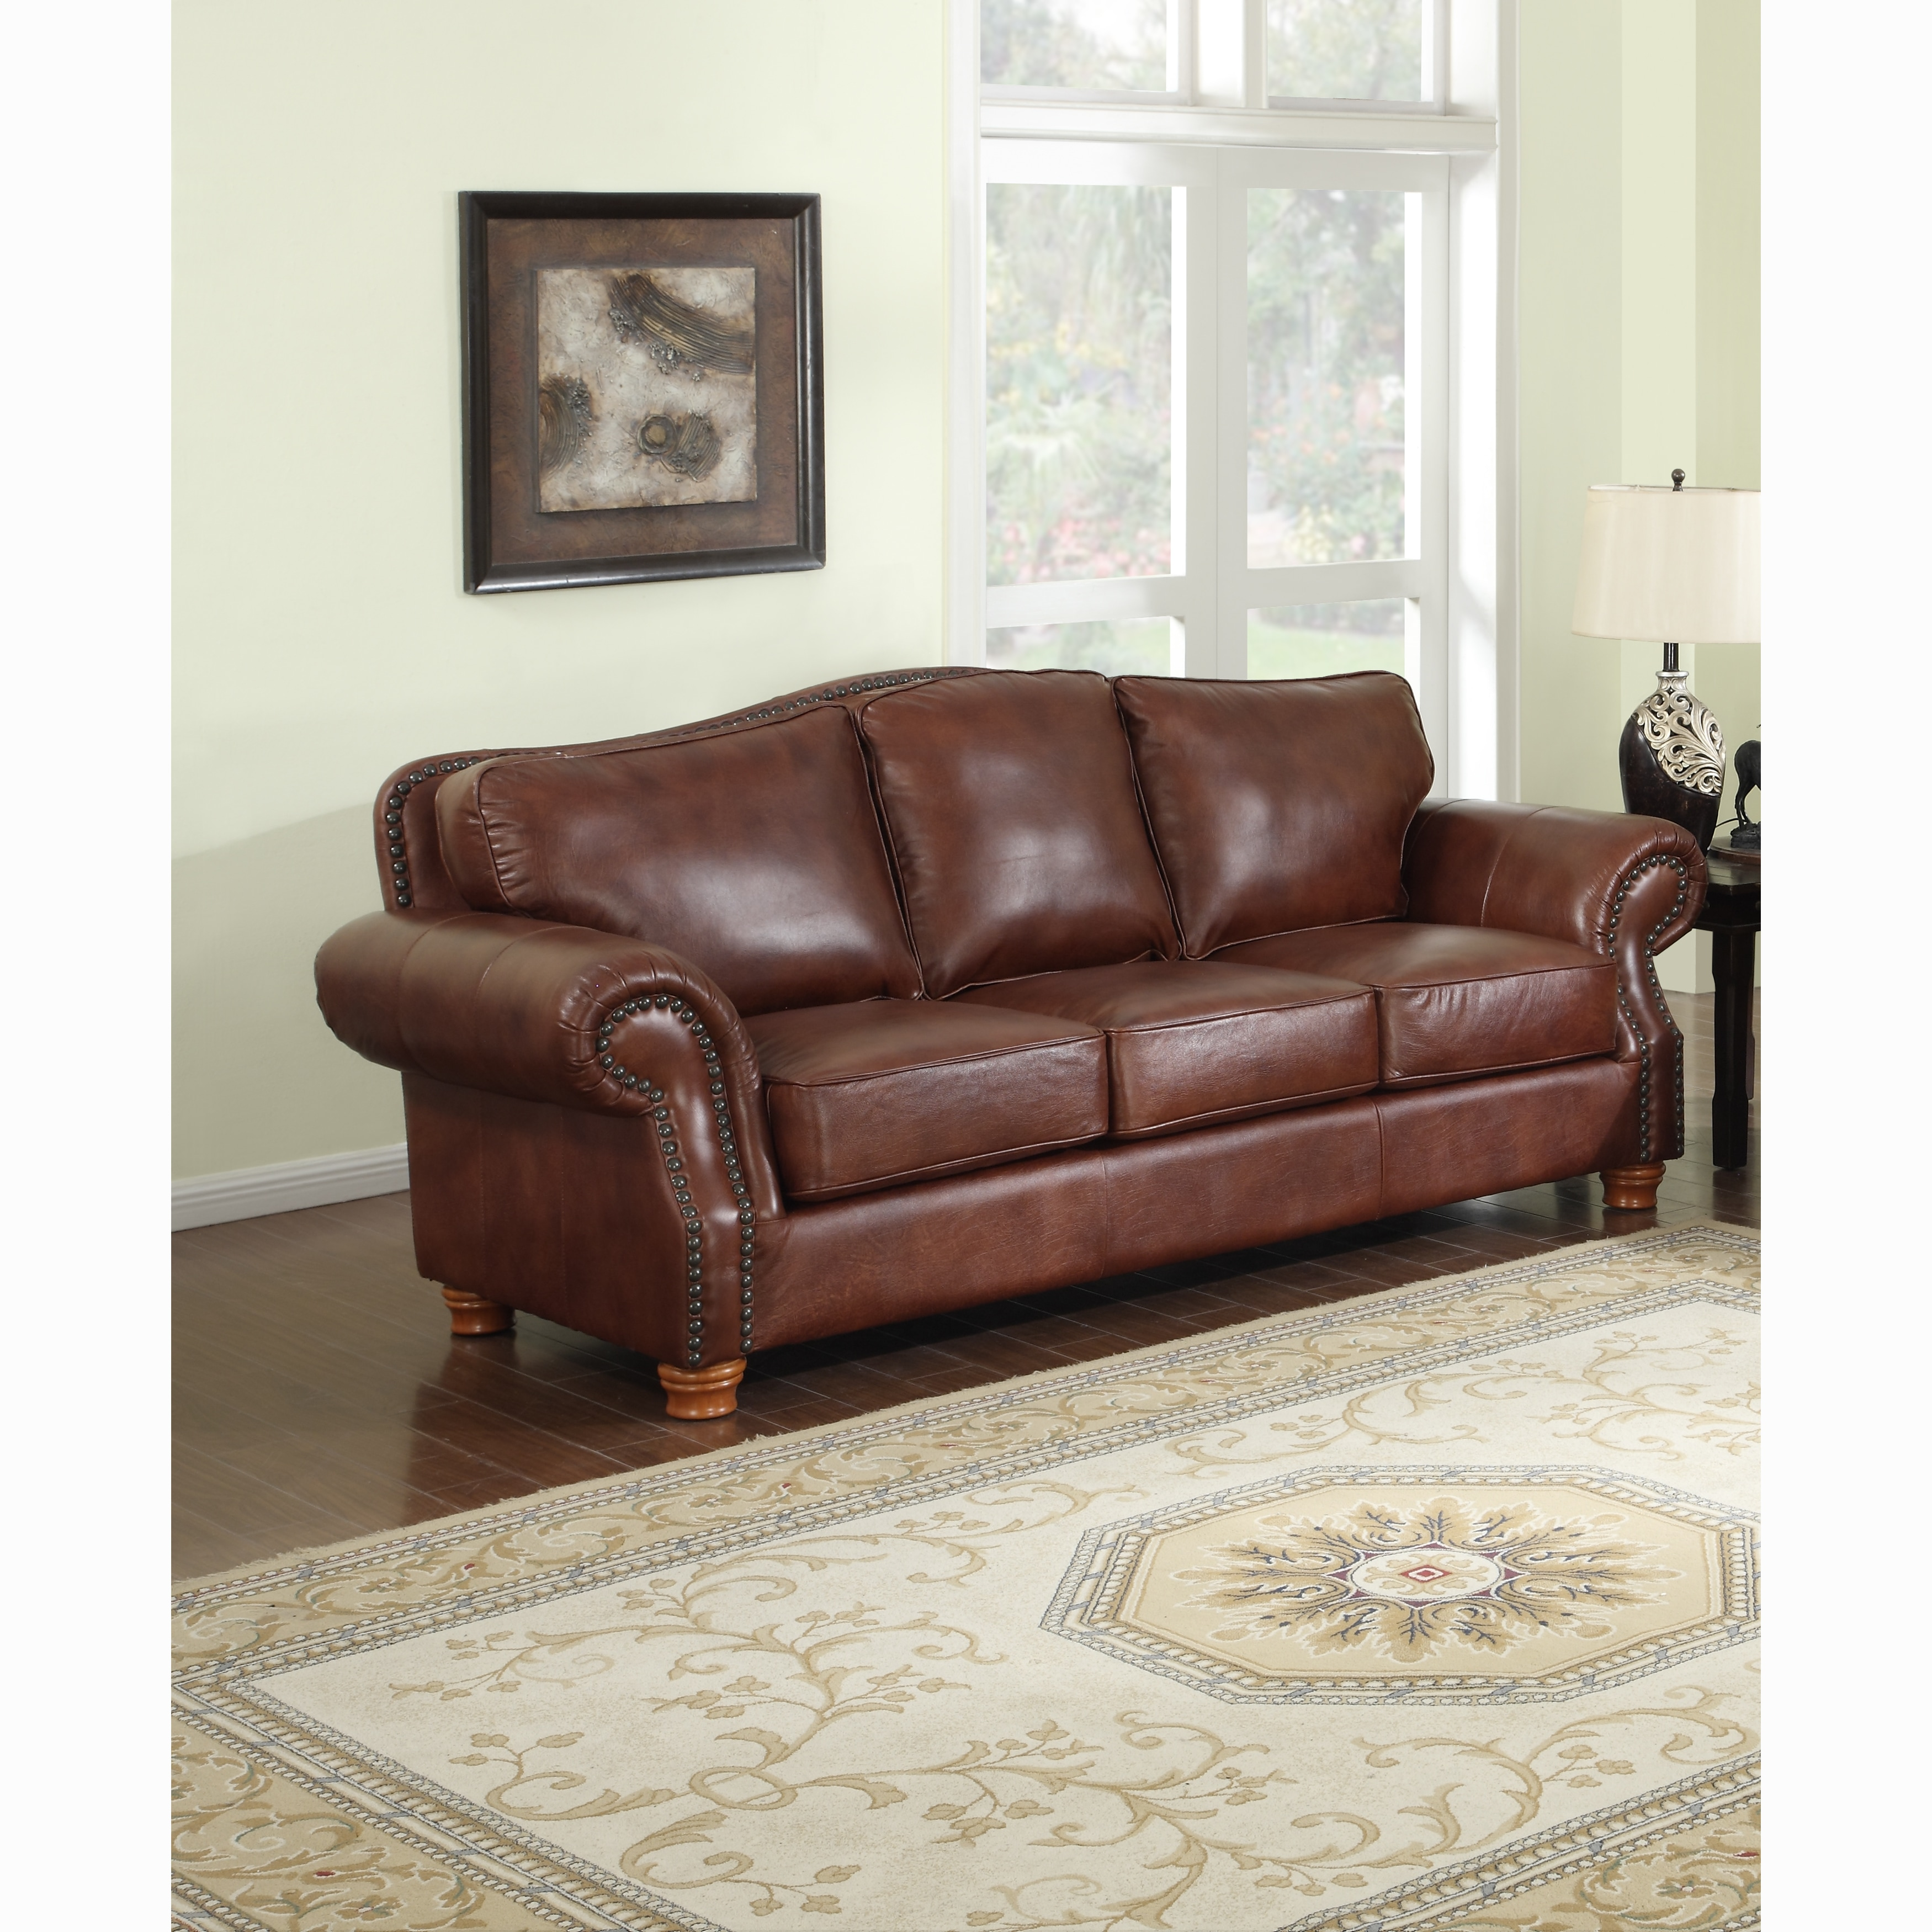 Sofa Leather Repair Toronto Buy Sofas Couches Online At Overstock Our Best Living Room